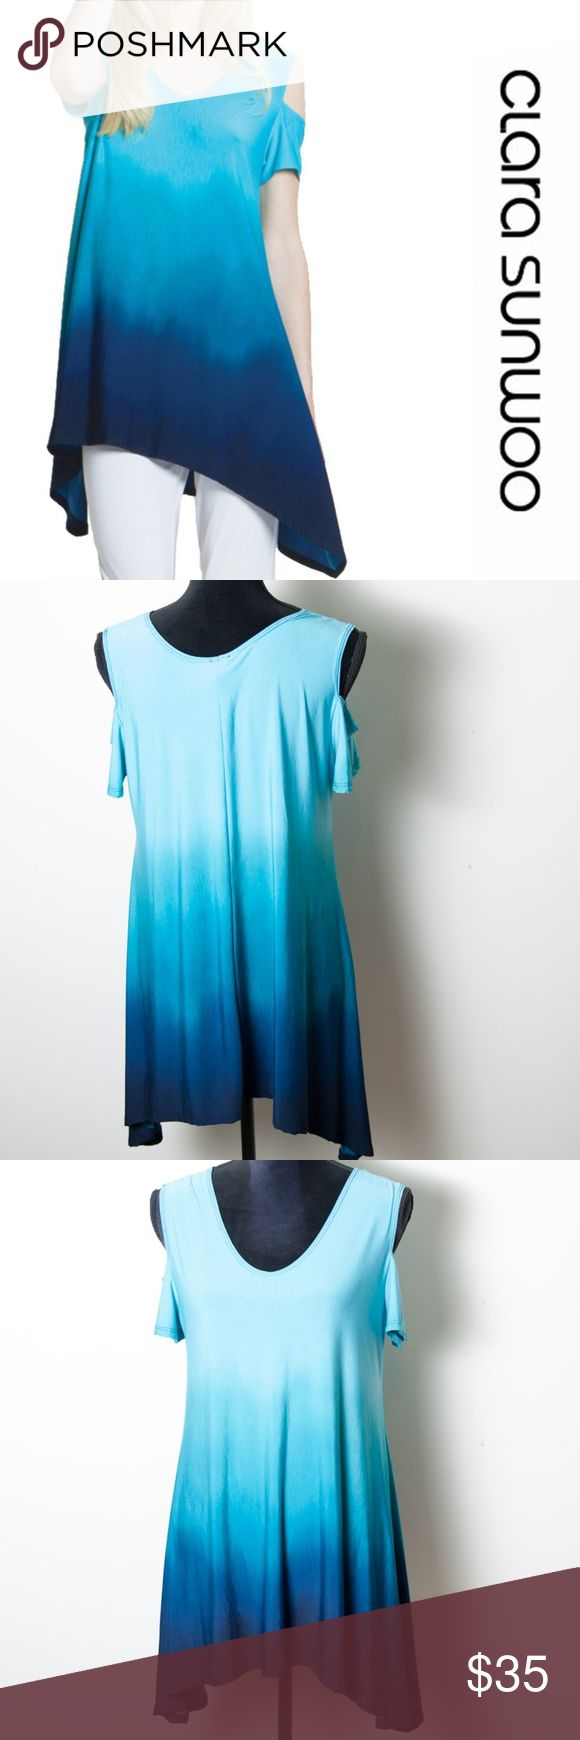 Clara Sunwoo Open Shoulder V Neck Tunic Blue Med Clara Sunwoo tunic in a size medium. Ombre open or cold shoulder in turquoise and navy. V neck, 1/2 sleeve. Soft stretch knit. Worn one time for a few hours. This is in excellent preloved condition. Clara Sunwoo Tops Tunics